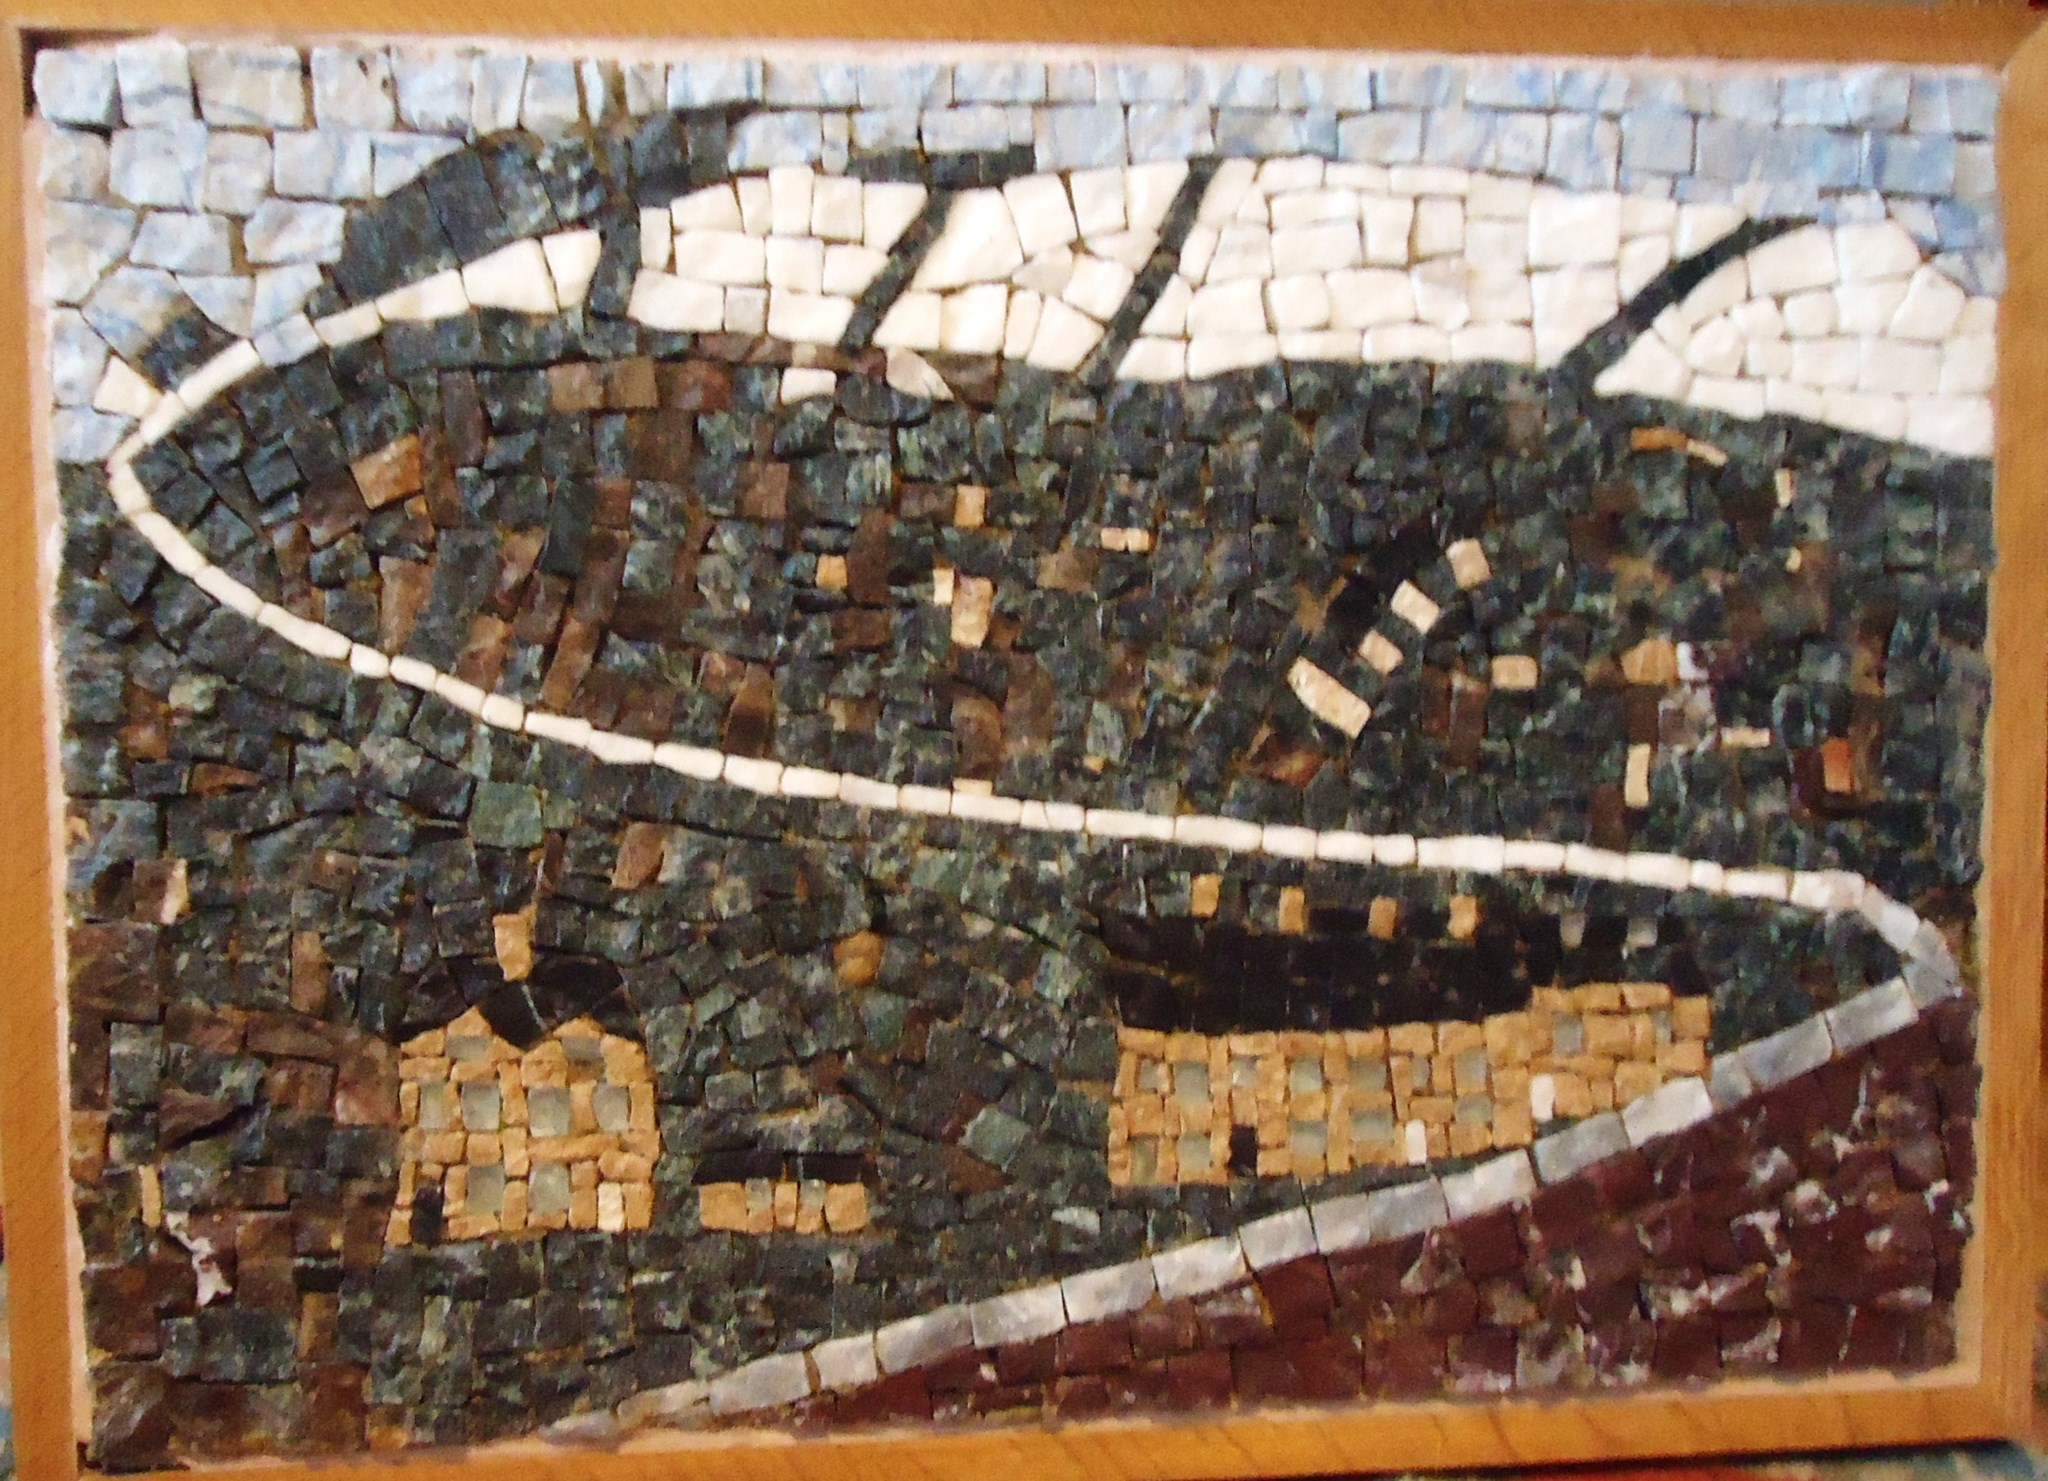 FELIX'S MOSAIC OF OUR HOUSE IN HEBDEN BRIDGE